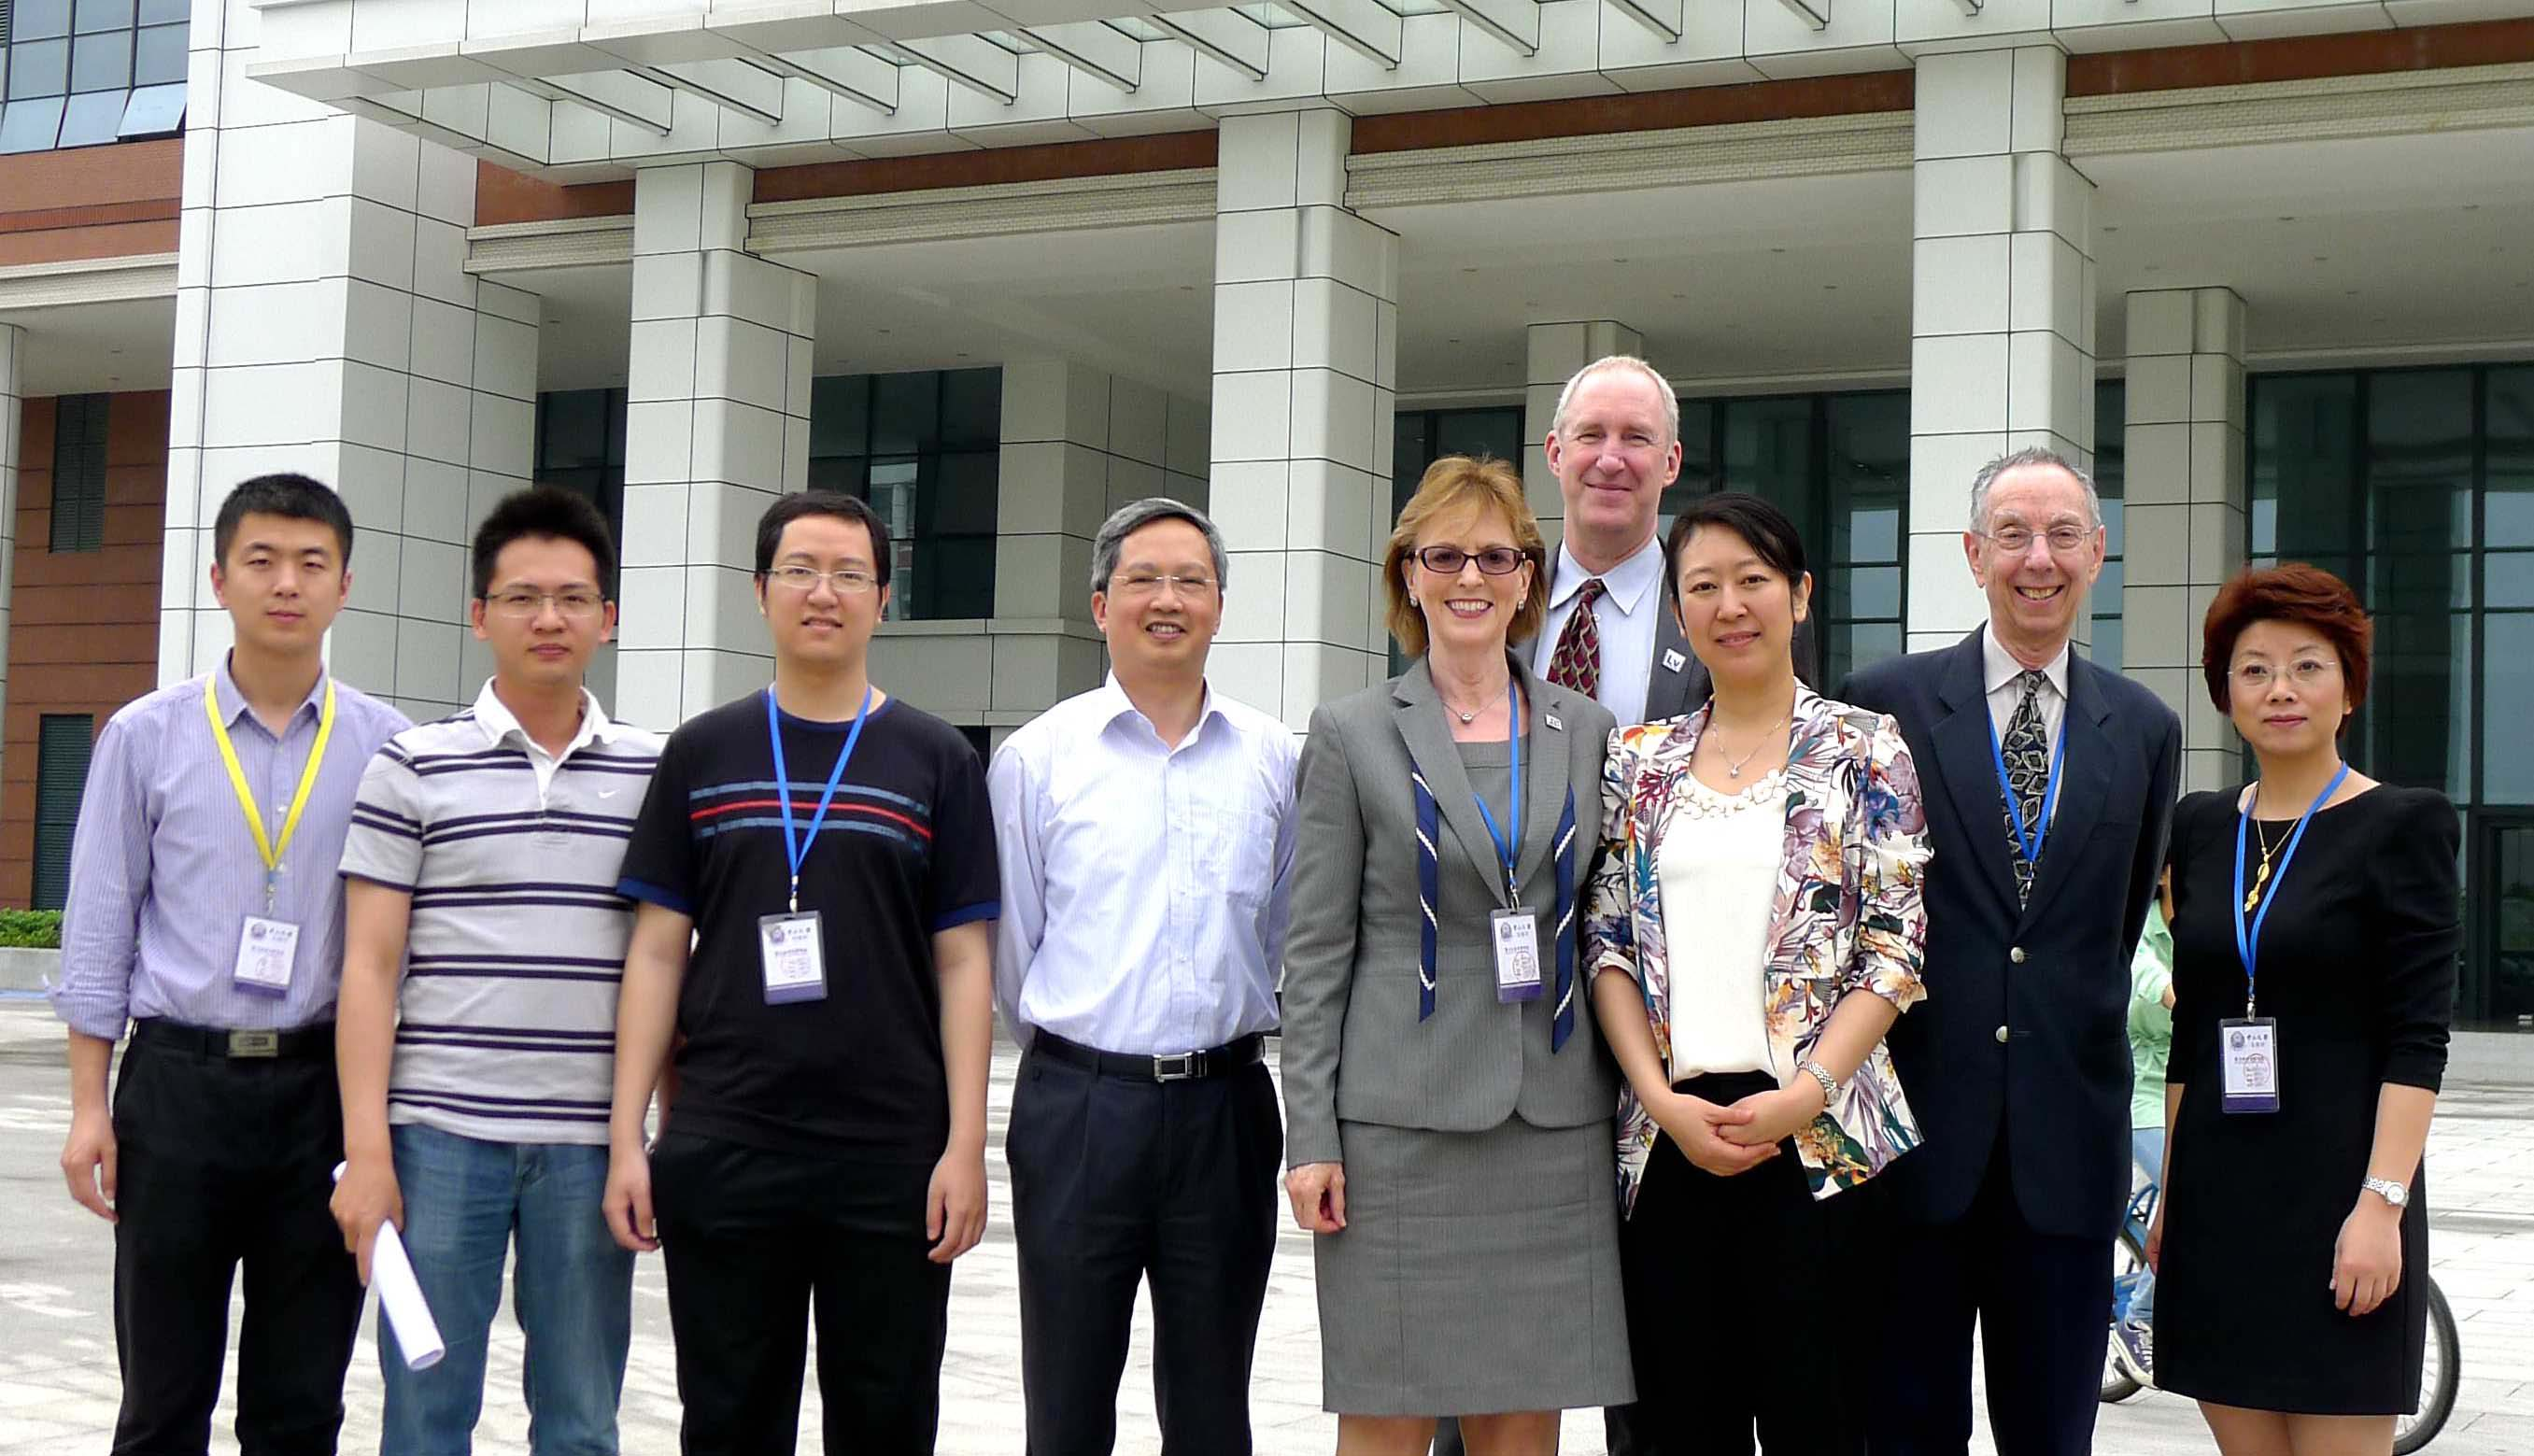 ATIP visits National Supercomputing Center in Guangzhou (NSCC-GZ), China in April 2014